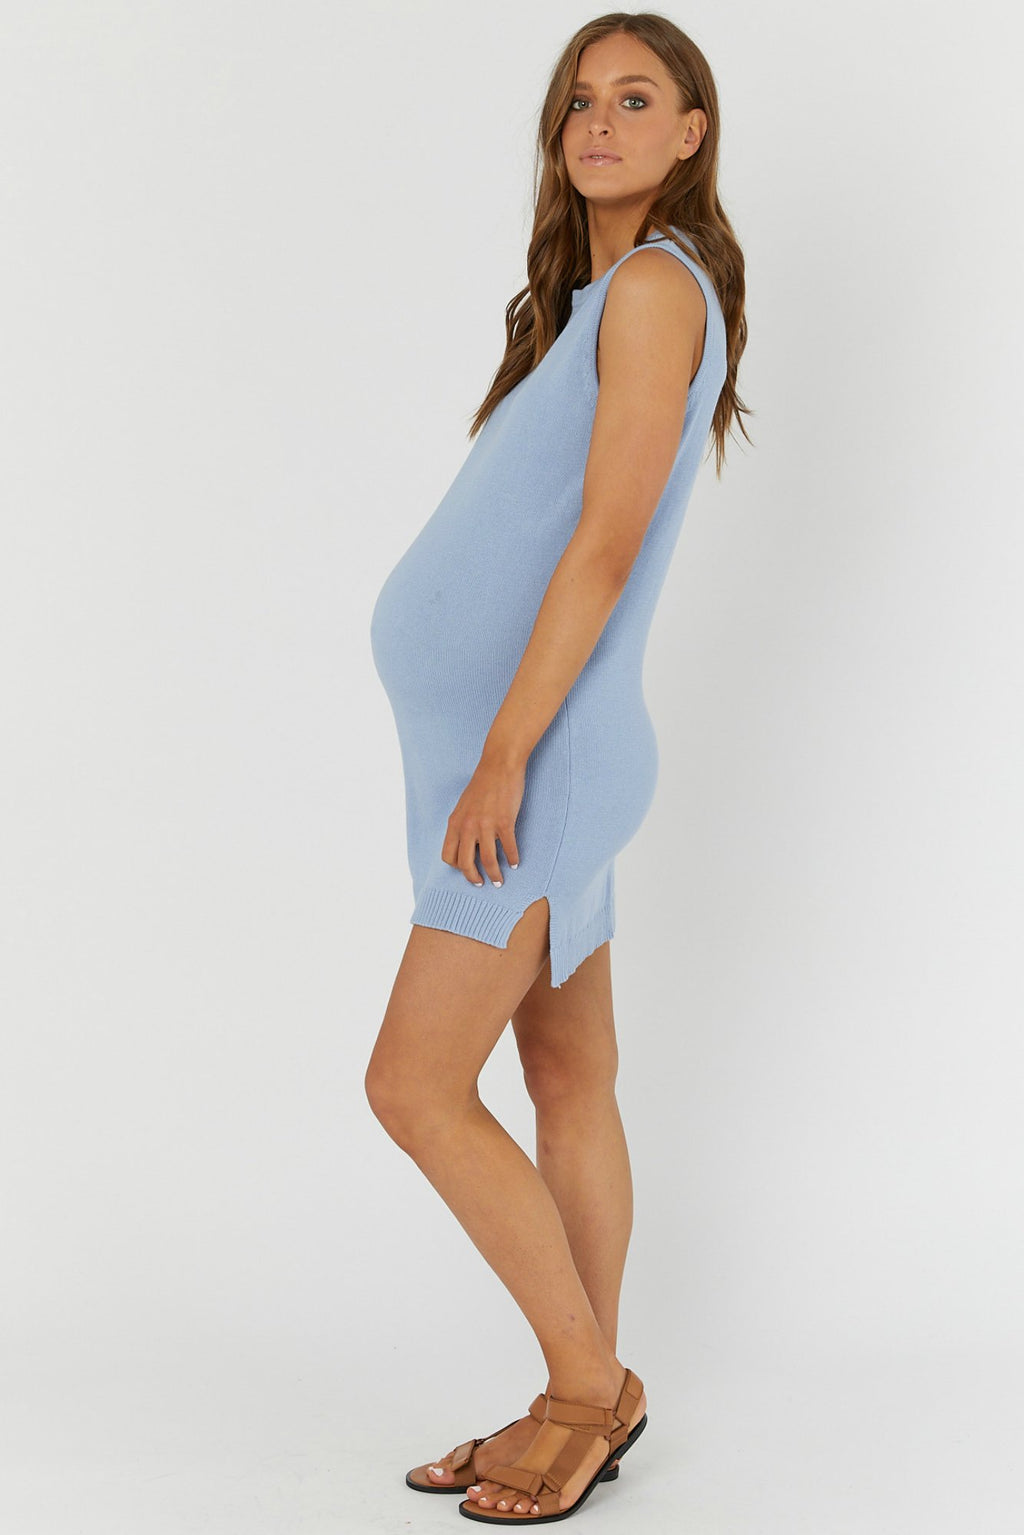 maternity + nursing dress| shift knit dress | arctic blue - MUMMA + BUBBA COLLECTIVE